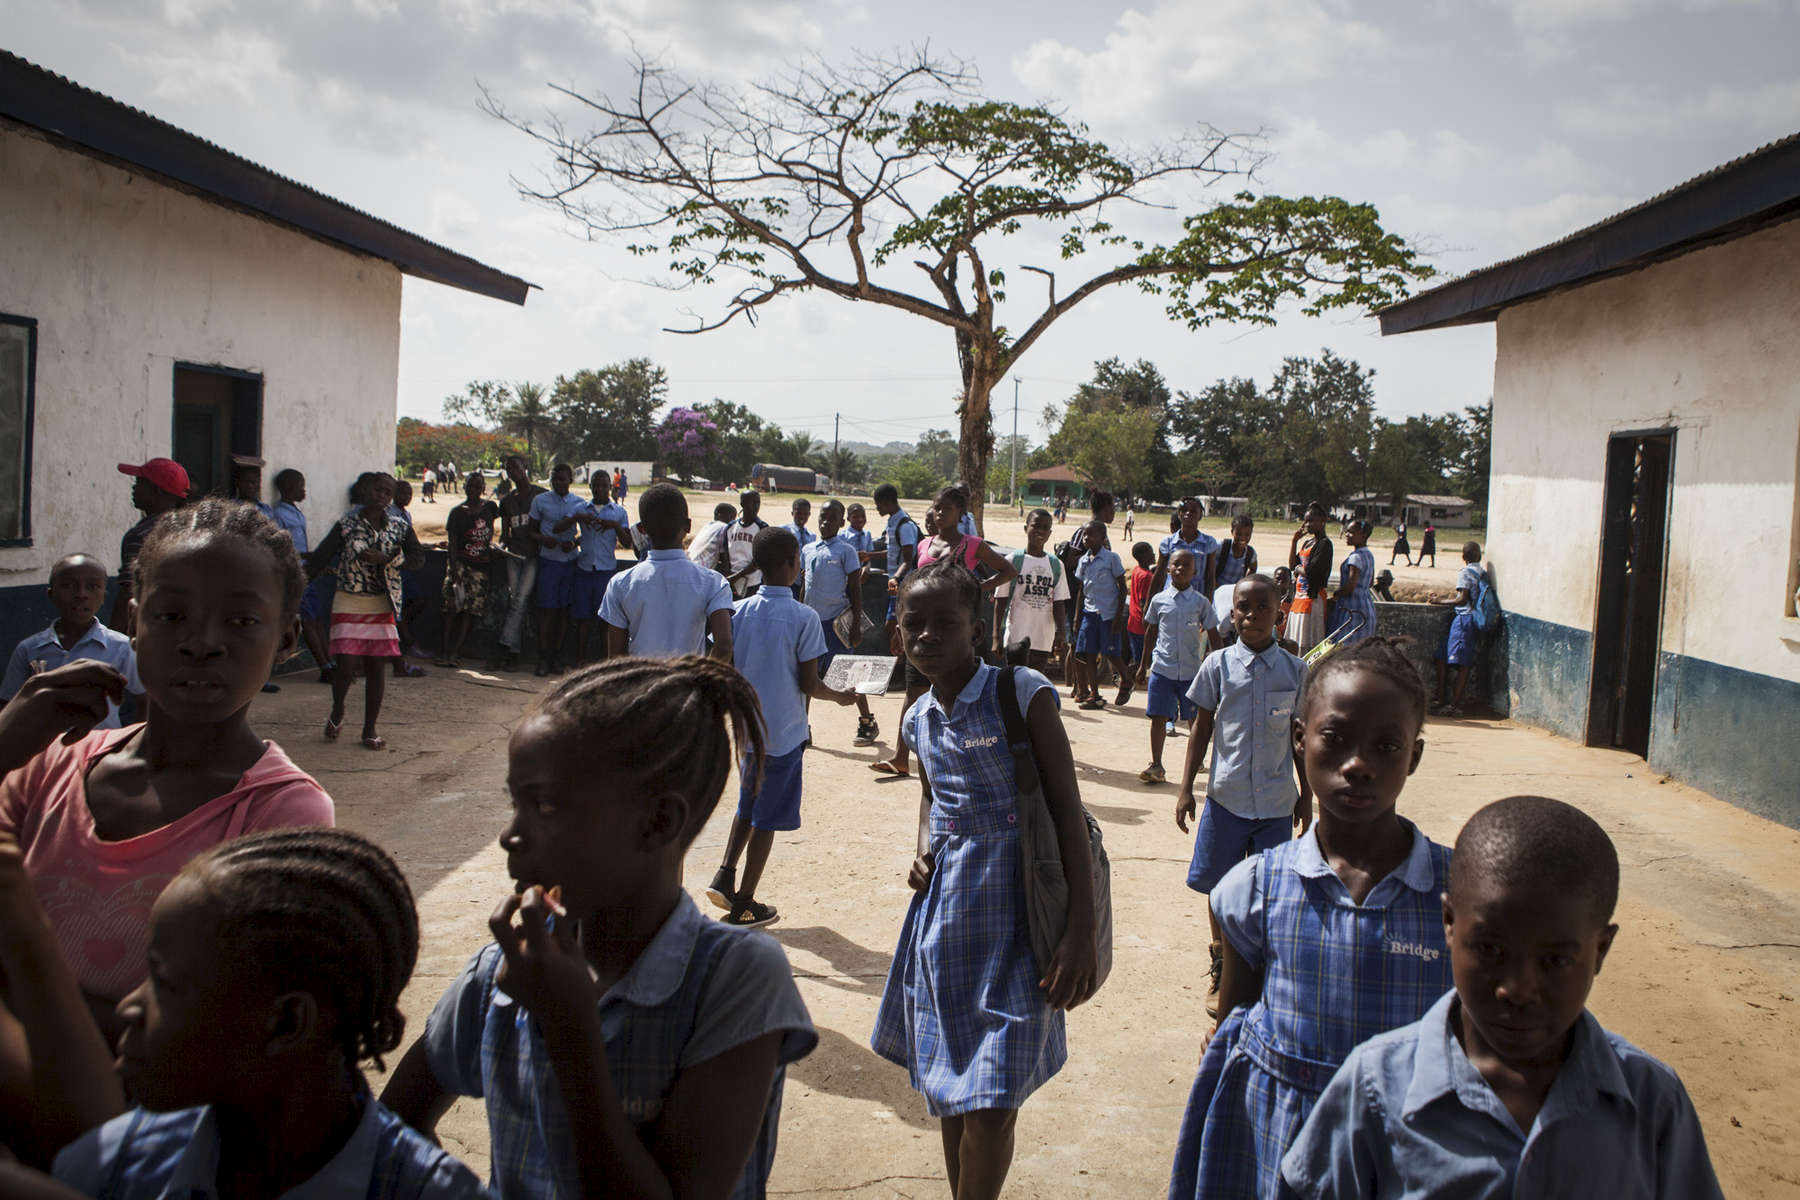 Students gather outside the Martha Tubman Elementary School after school in Nimba County, Liberia.